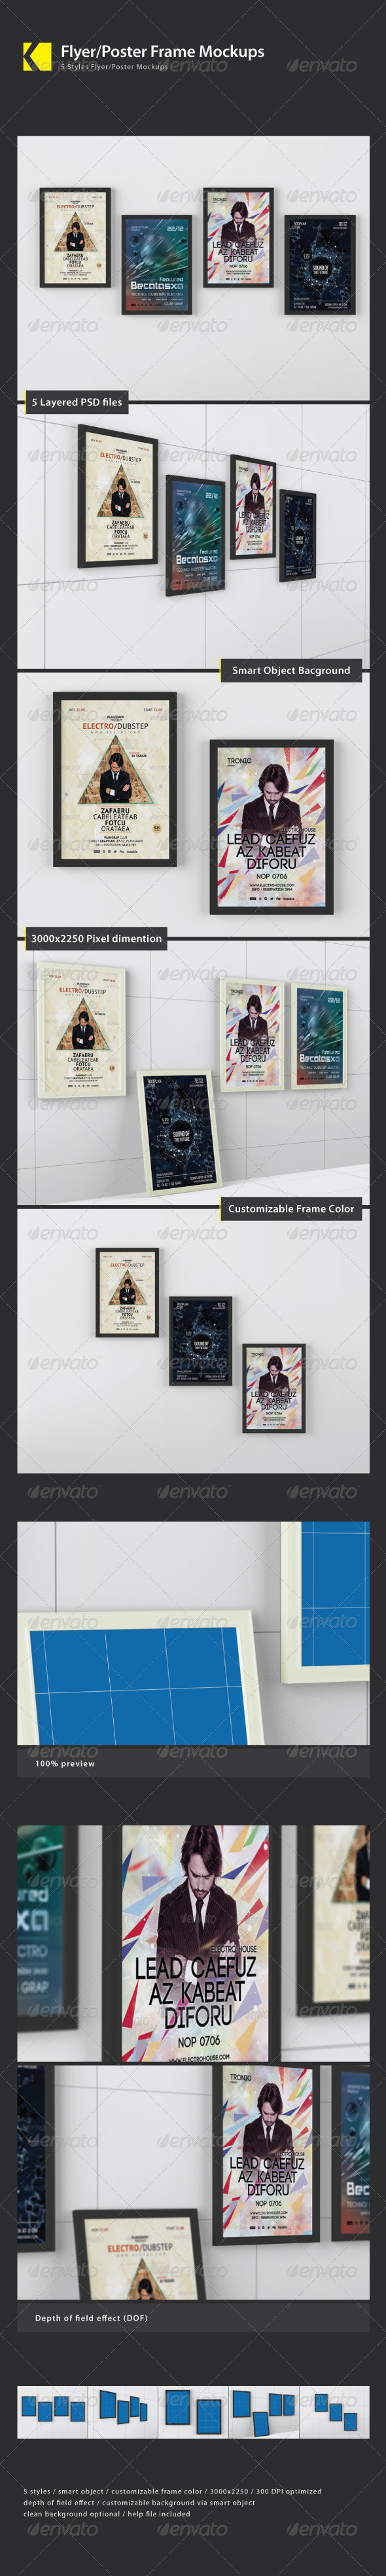 Flyer/Poster Frame Mockups - Product Mock-Ups Graphics